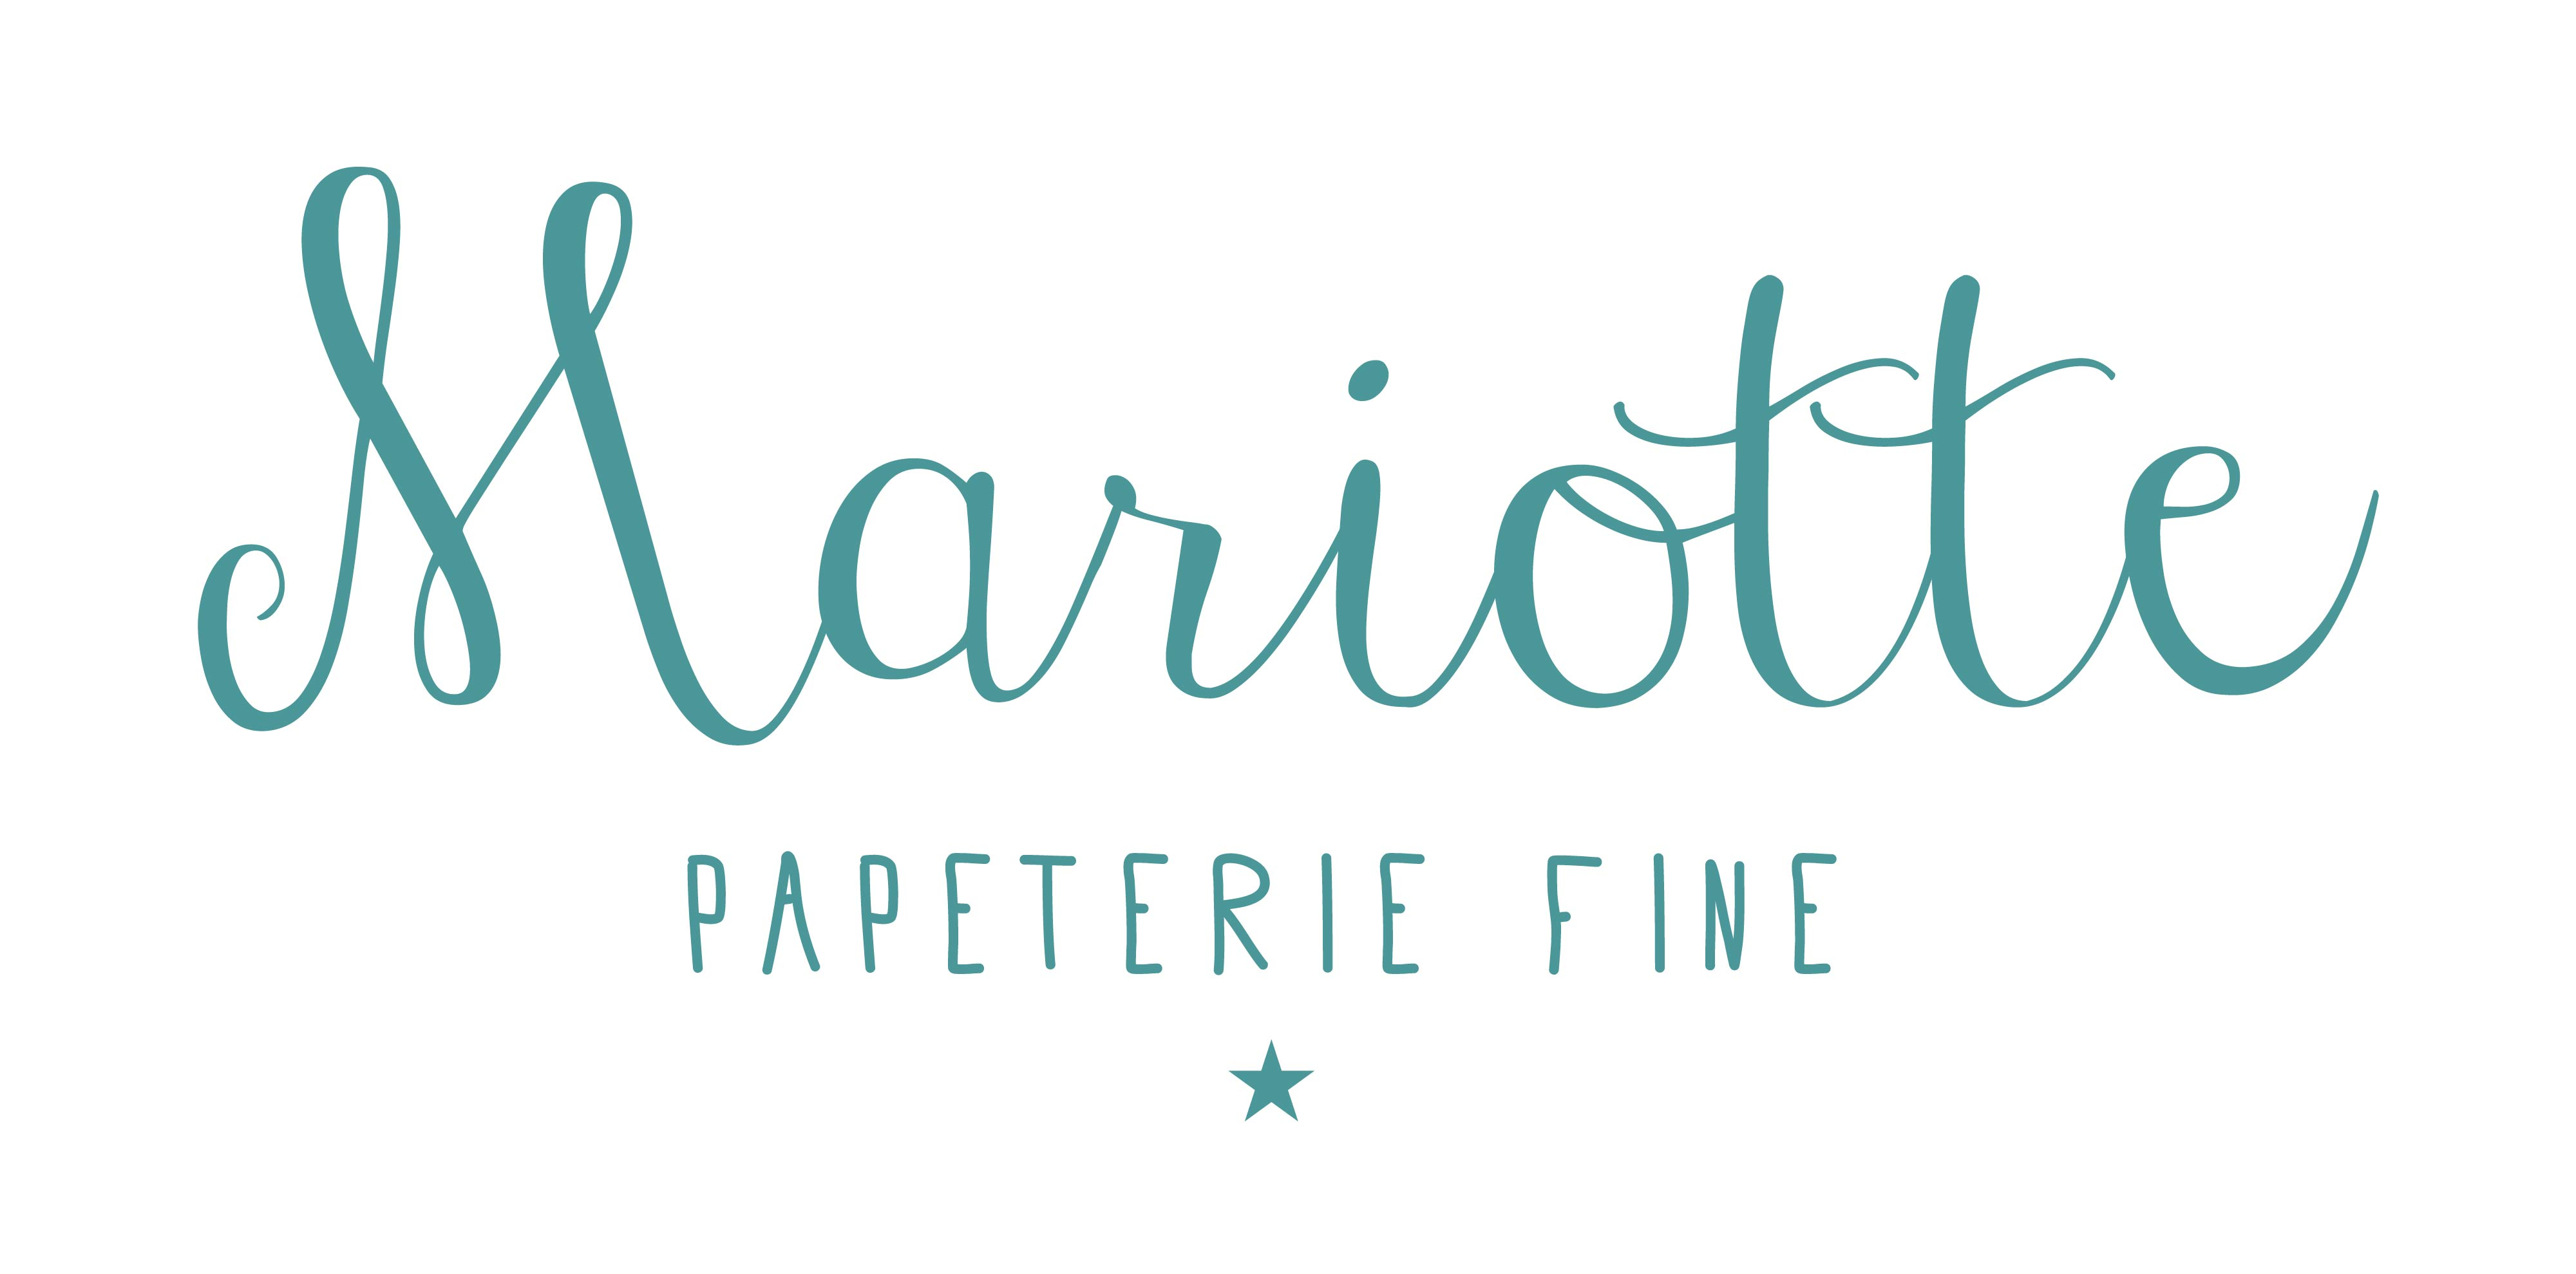 Mariotte Papeterie fine